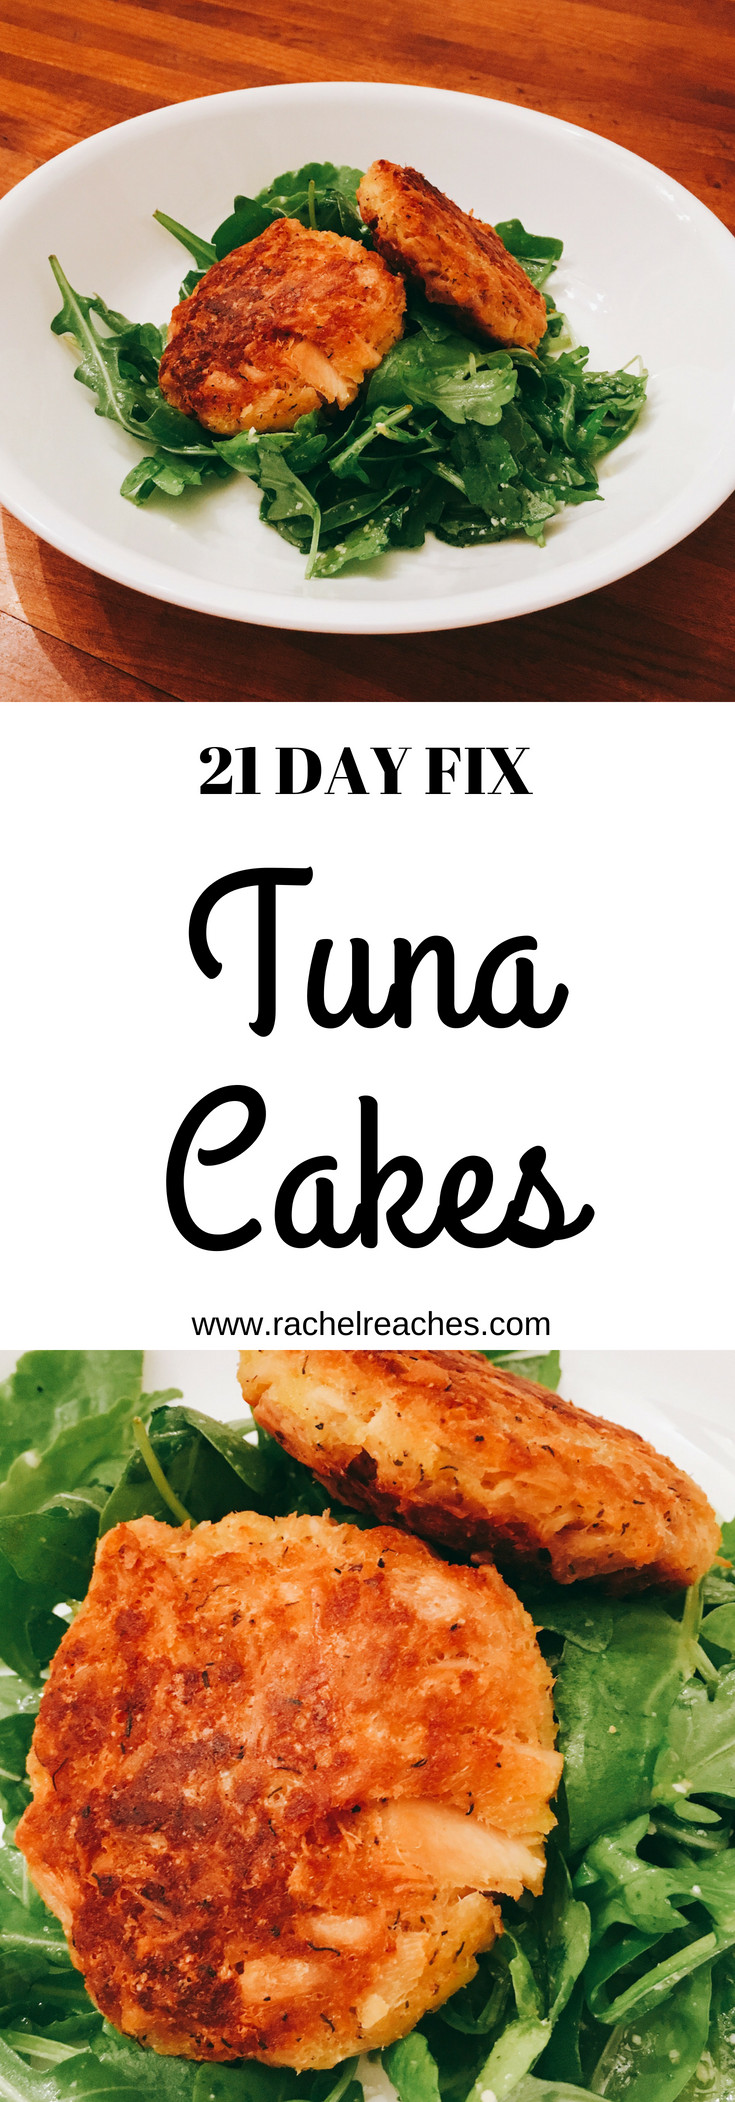 What Can I Make For Dinner With These Ingredients  Tuna Cakes with Dill Sauce Recipes Pinterest